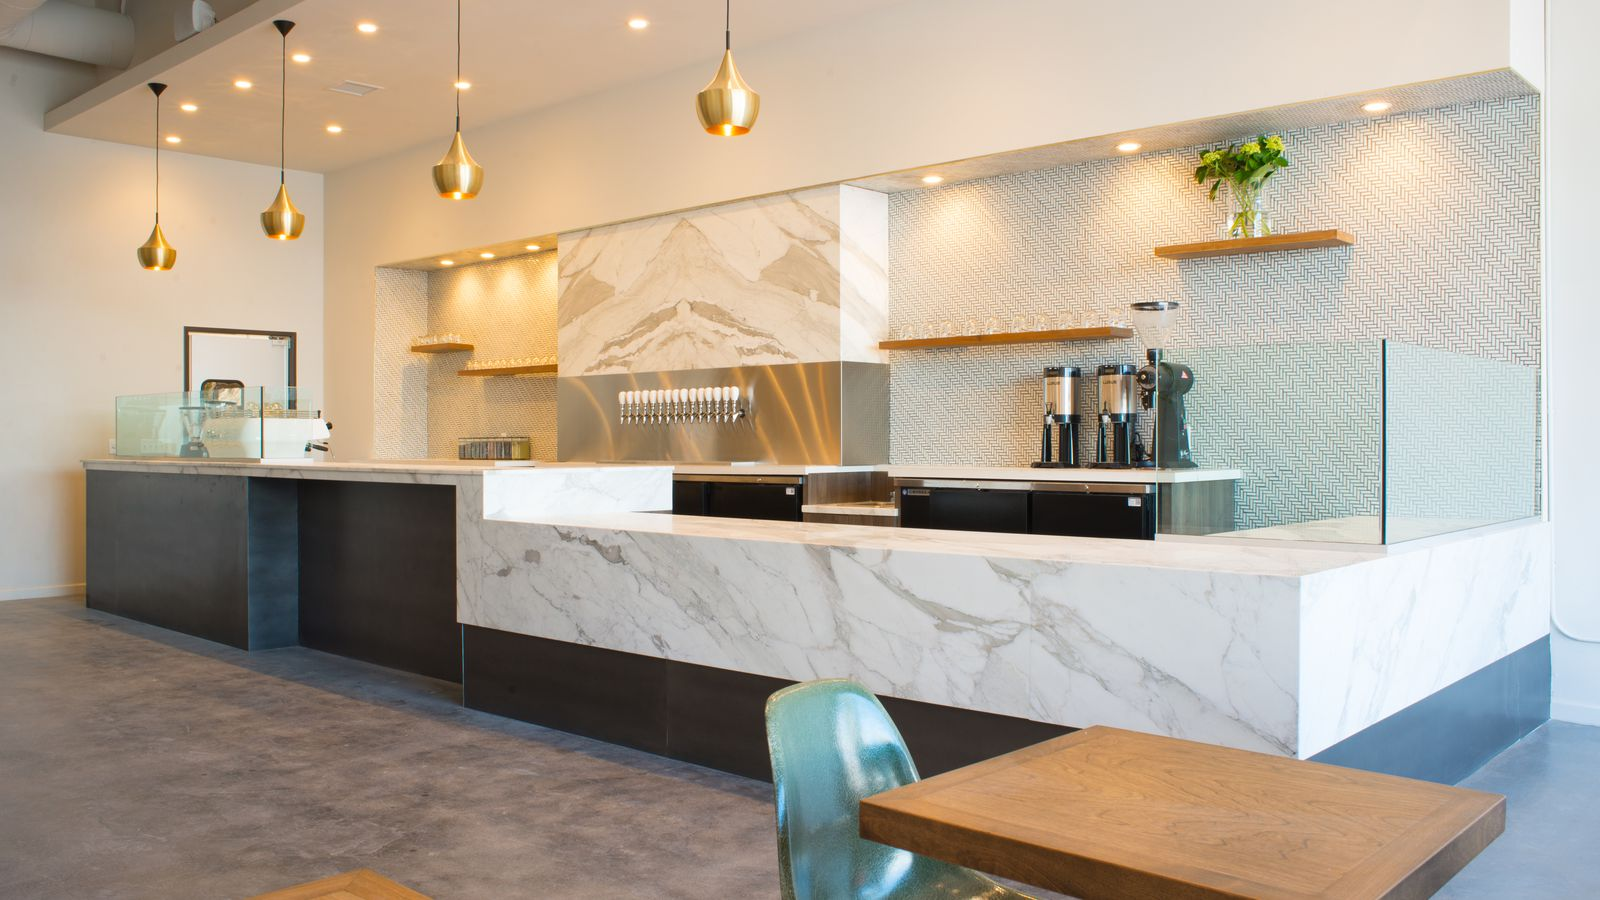 Holsem Coffee Blends High Design With Wholesome Eats & Fun Drinks - Eater San Diego